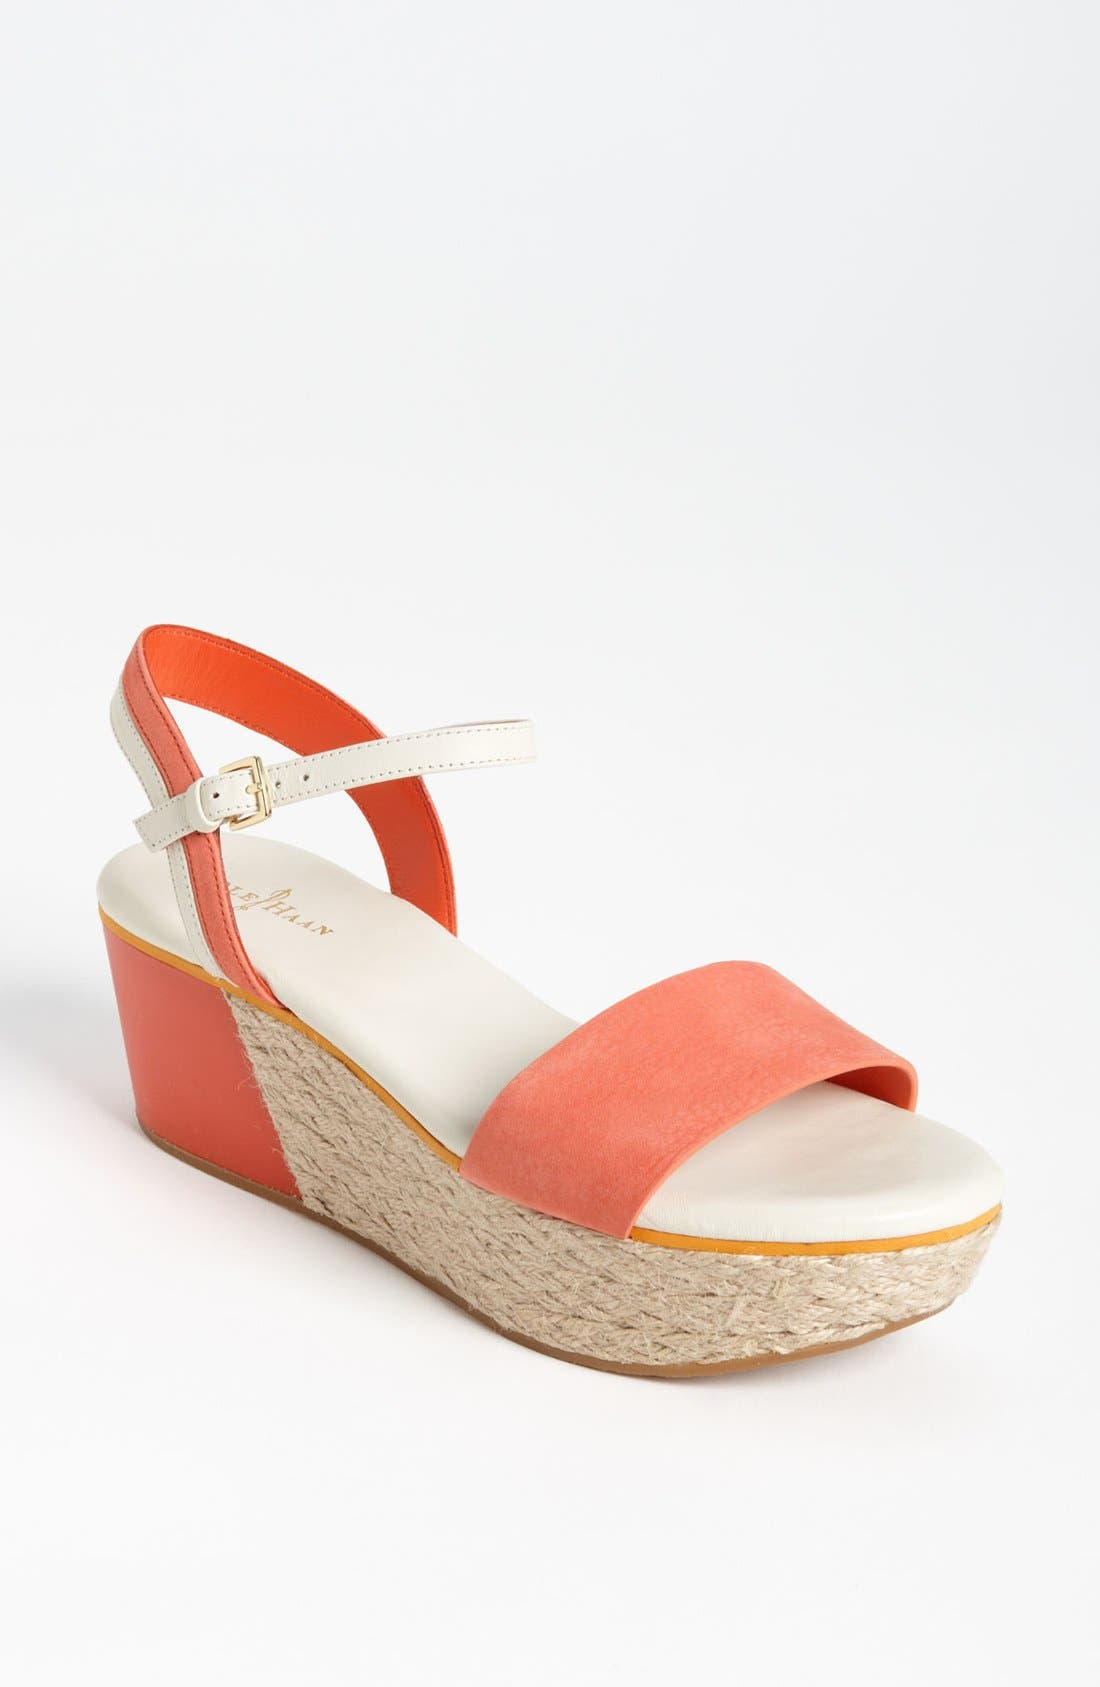 Main Image - Cole Haan 'Arden' Wedge Sandal